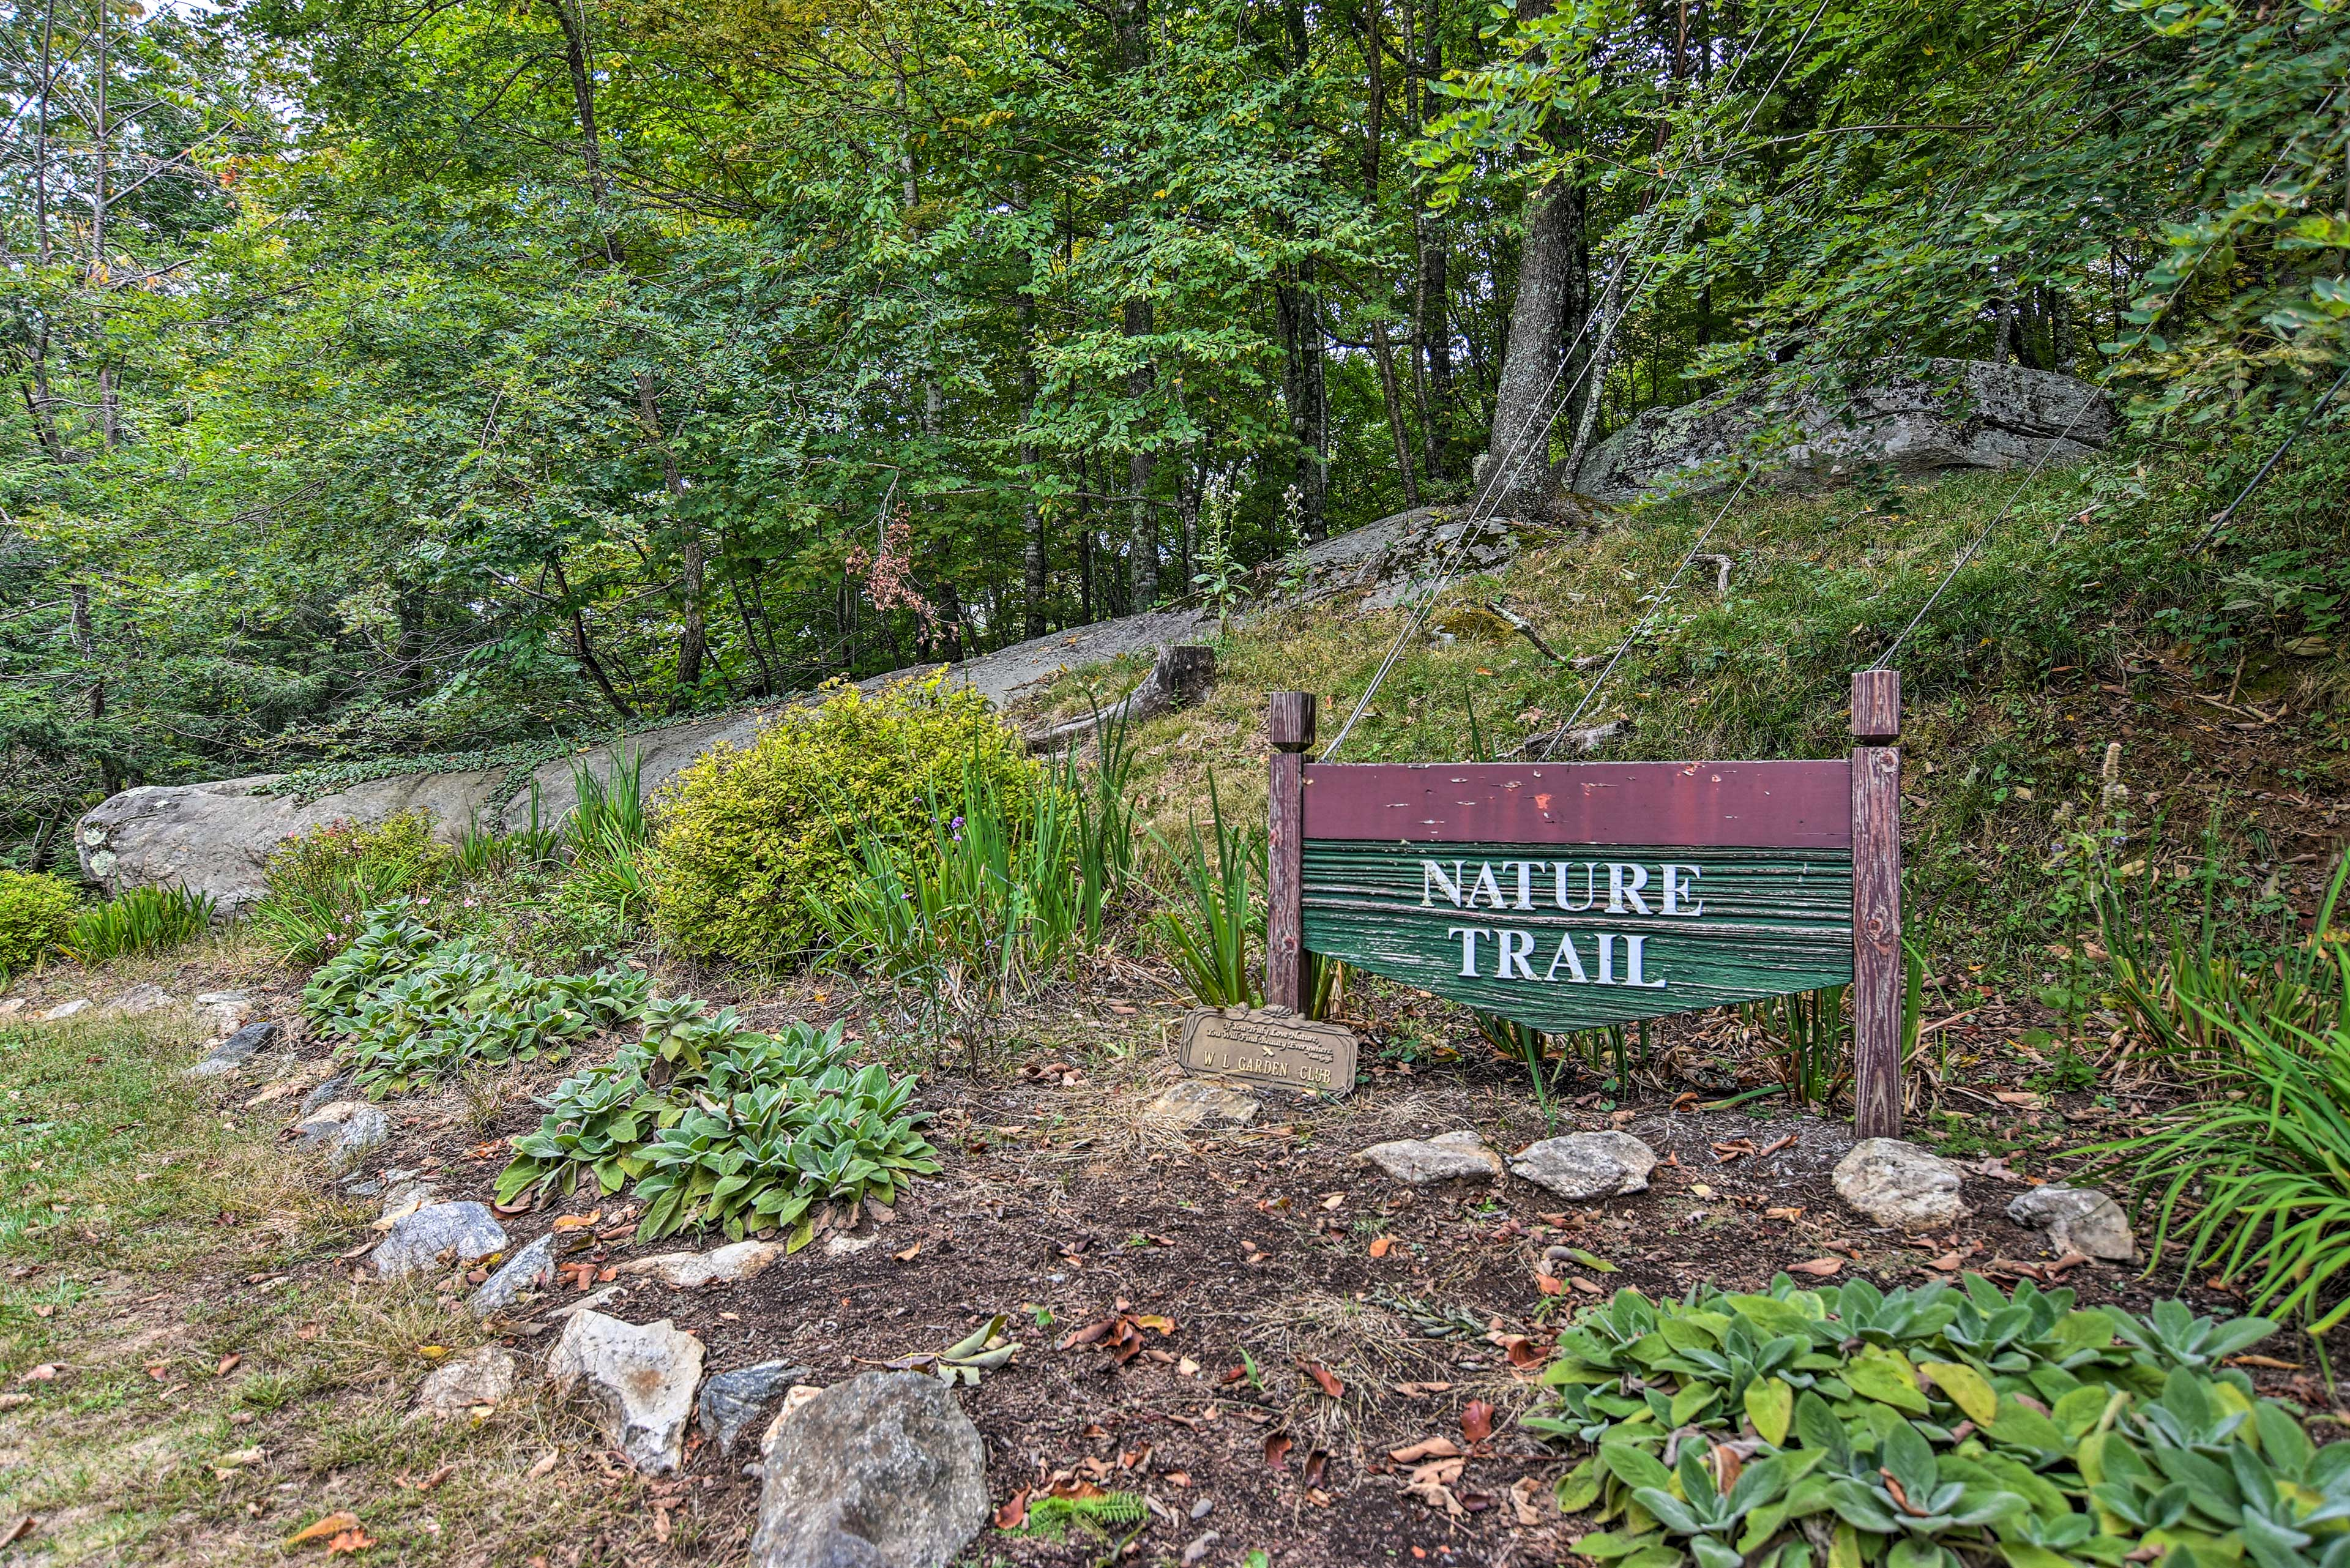 The vacation rental offers access to numerous walking & nature trails.